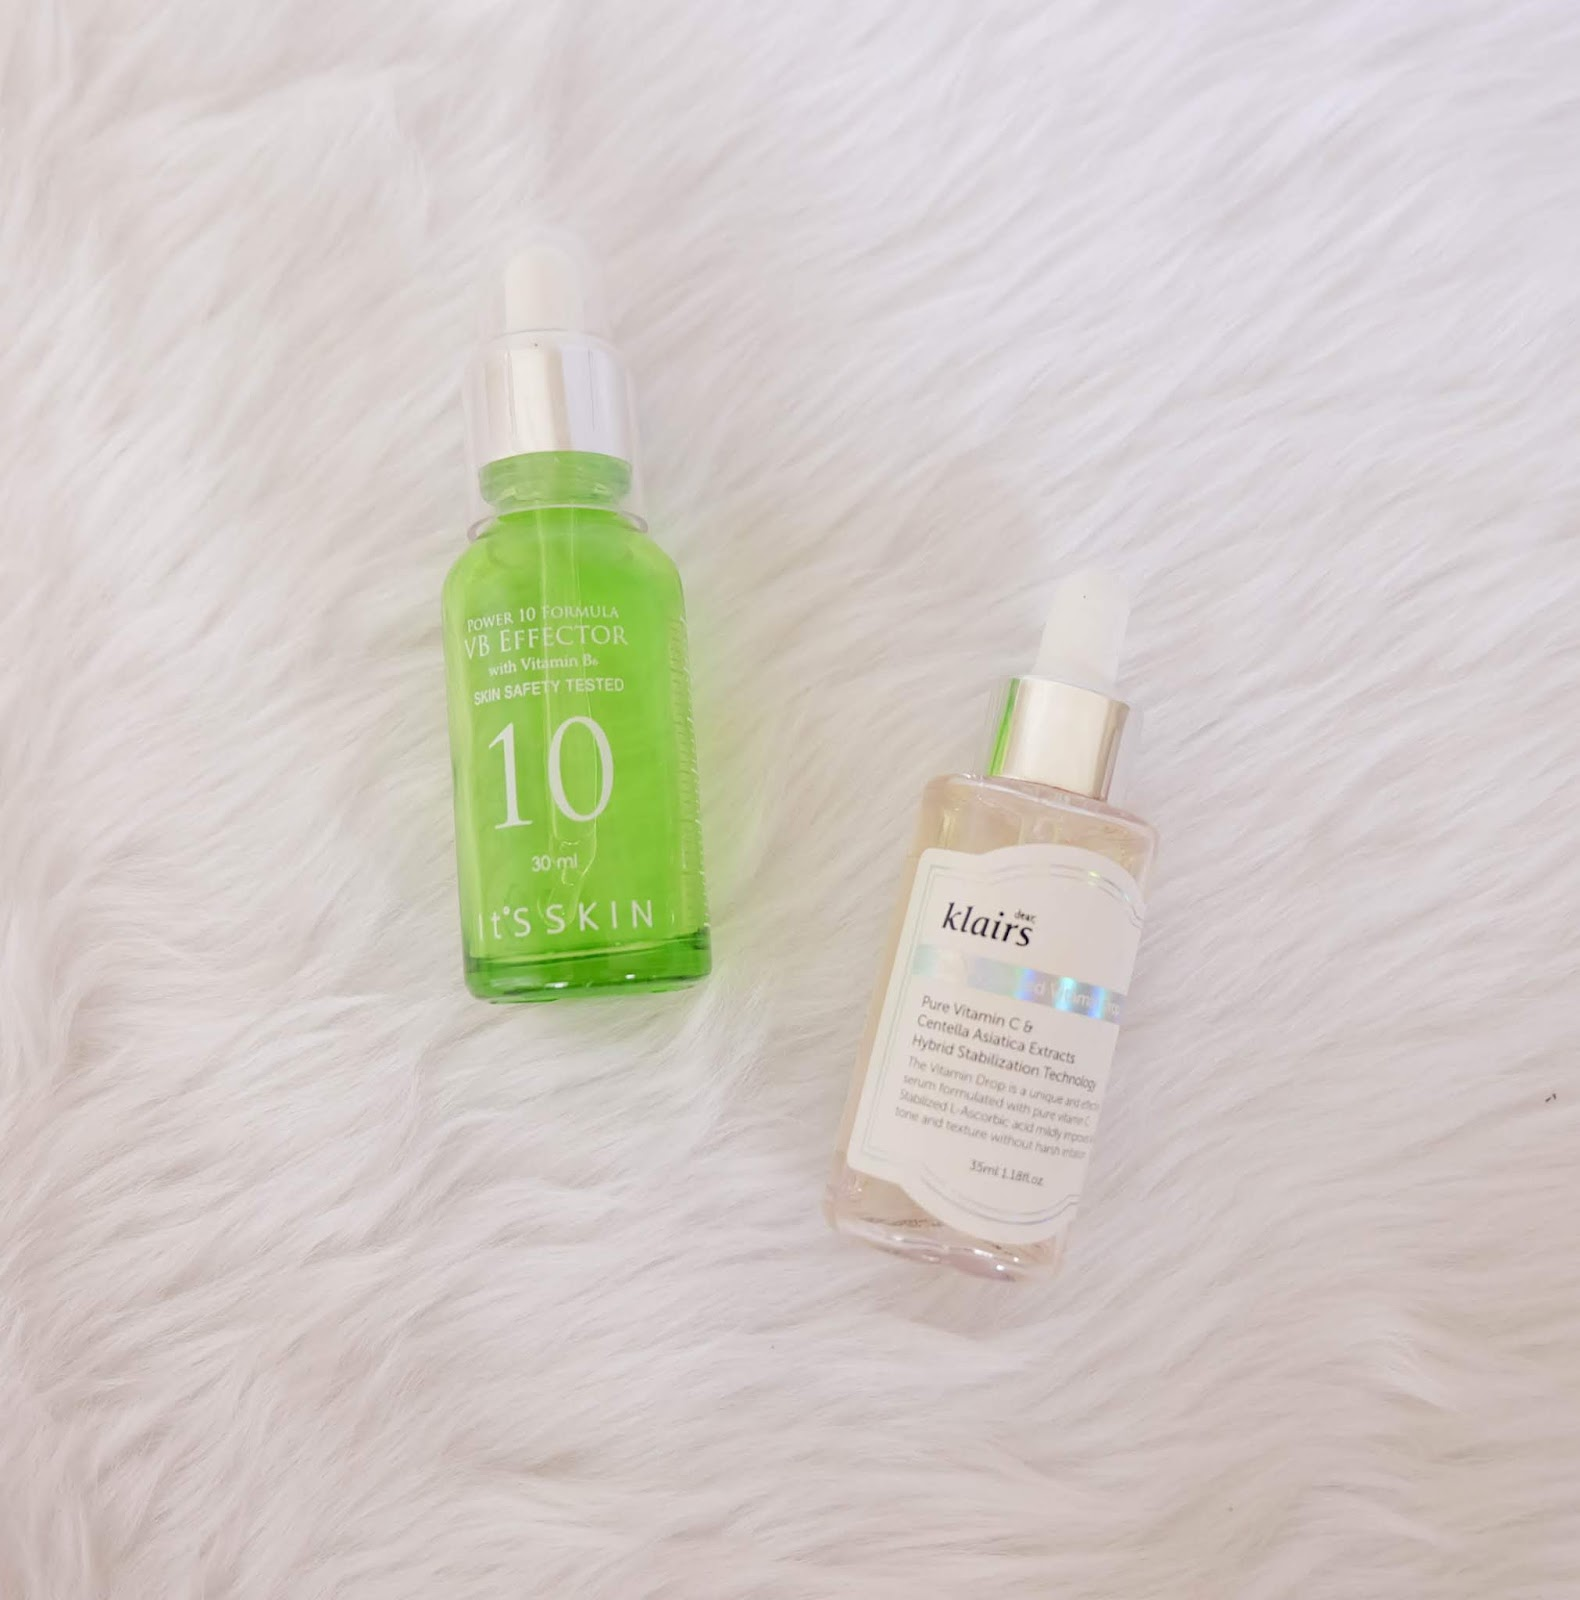 It's Skin Power 10 Formula VB Effector & Dear, Klairs Freshly Juiced Vitamin C